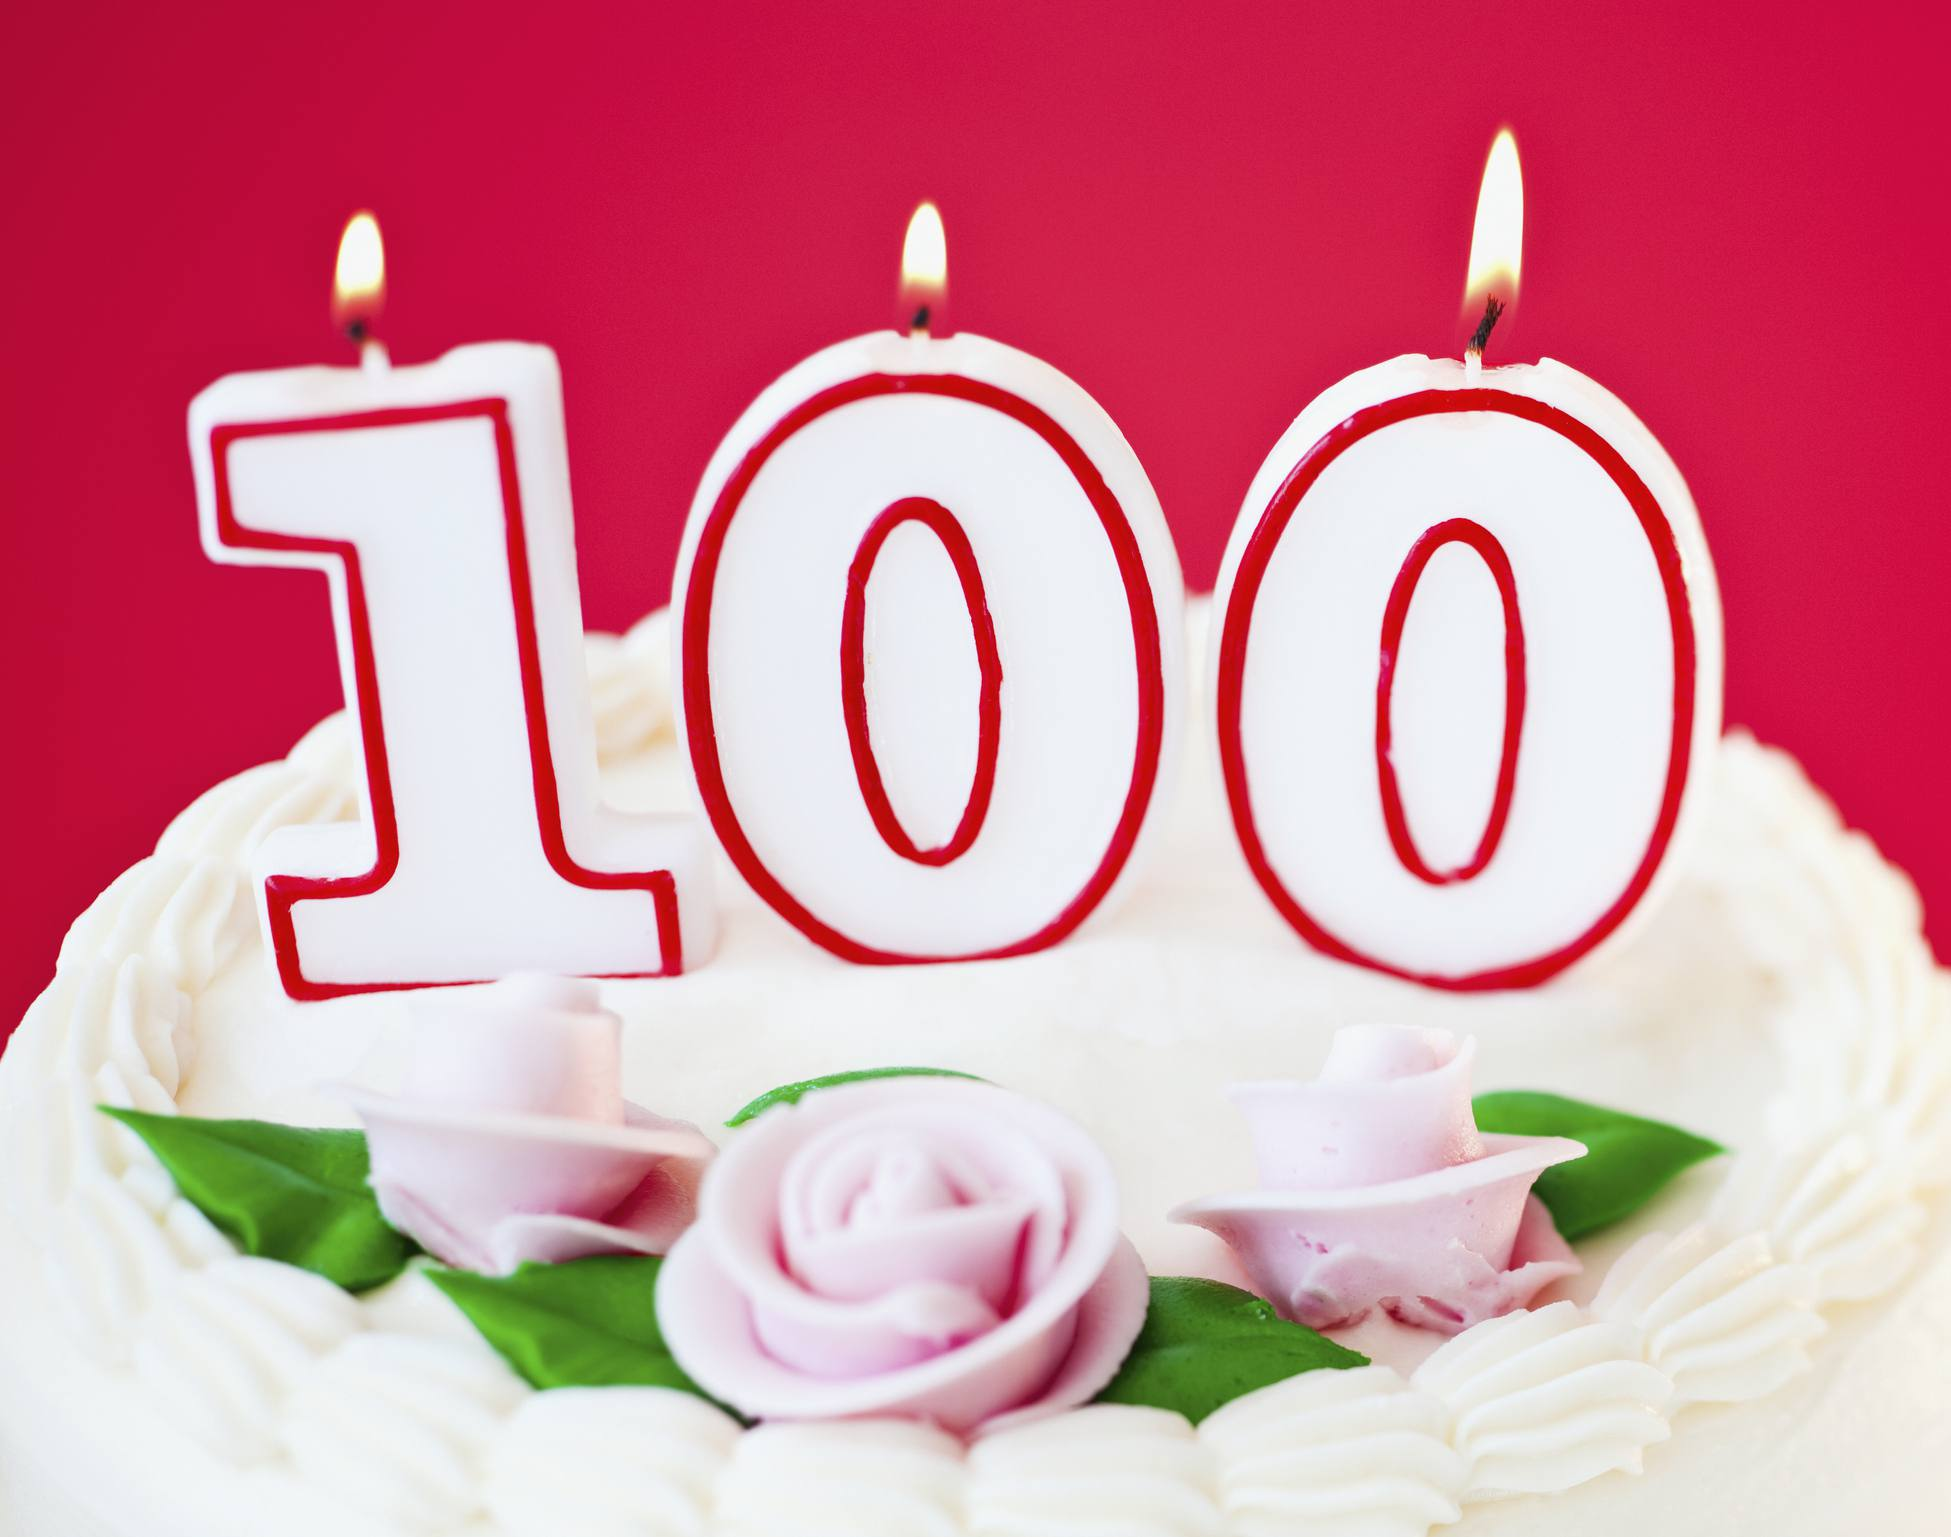 100th Birthday Party Ideas Candles On Cake